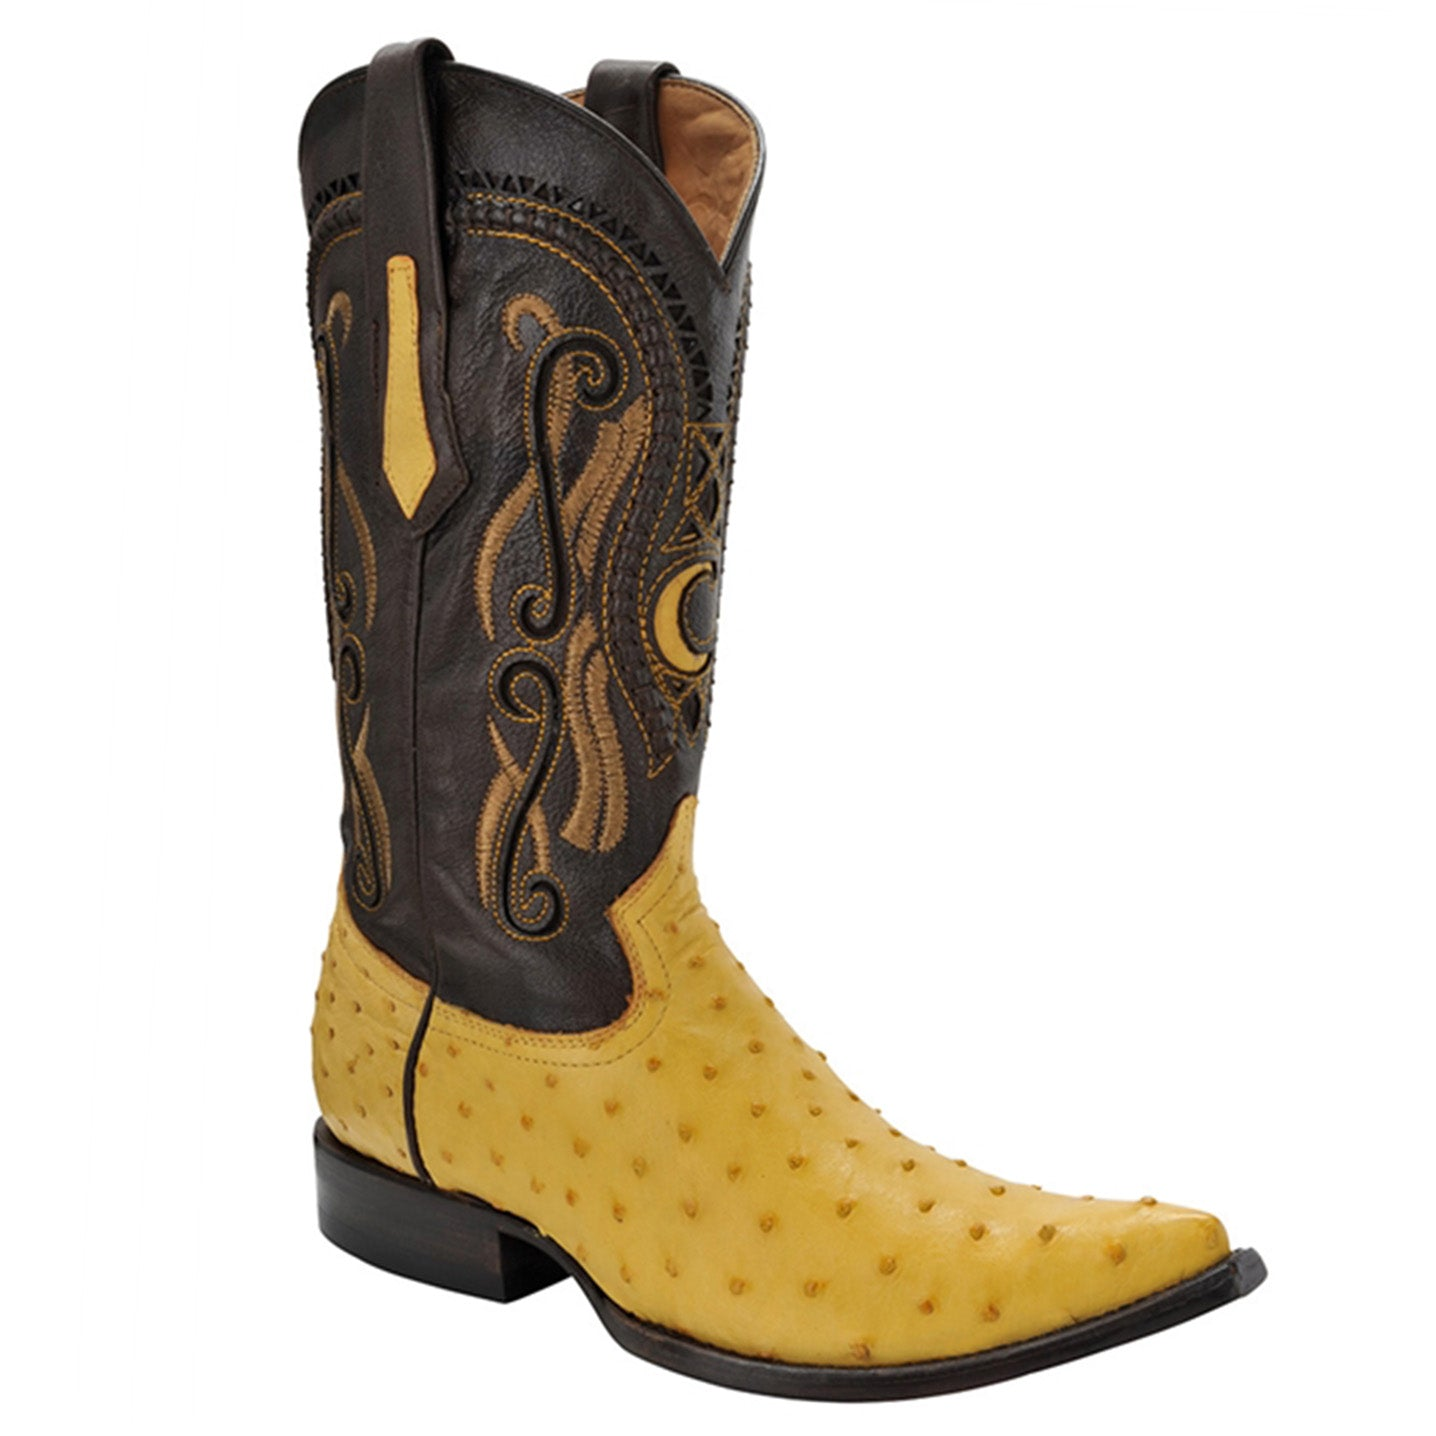 Cuadra Men's Ostrich Yellow Chihuahua Pointed Toe Boots